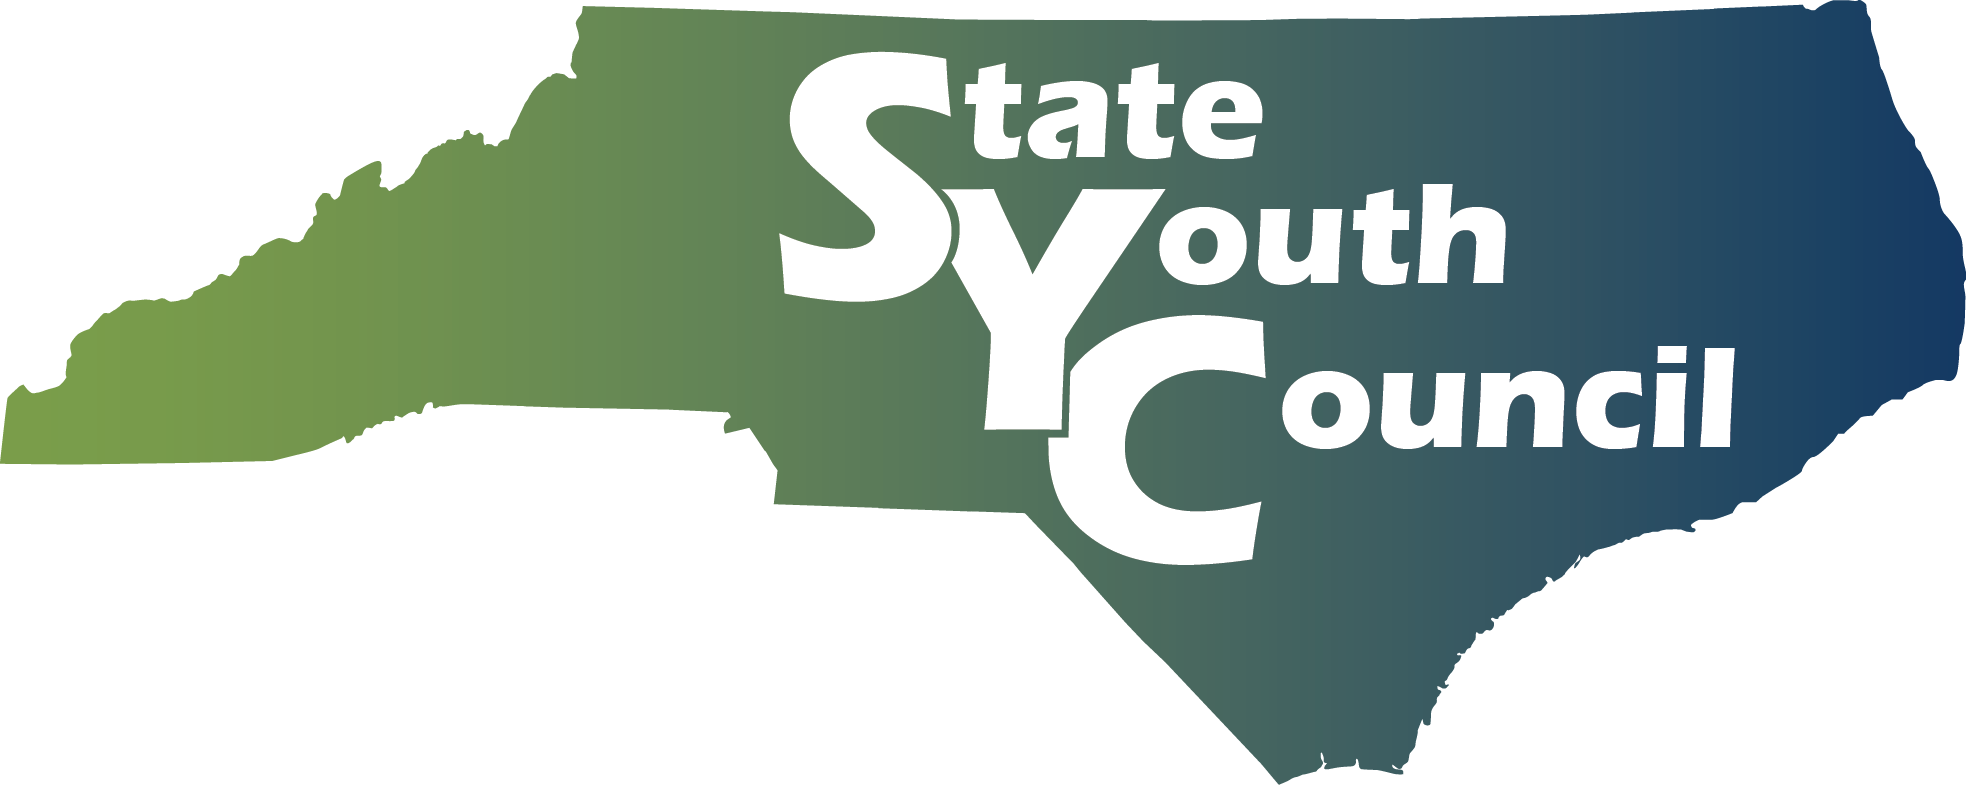 State Youth Councils Logo